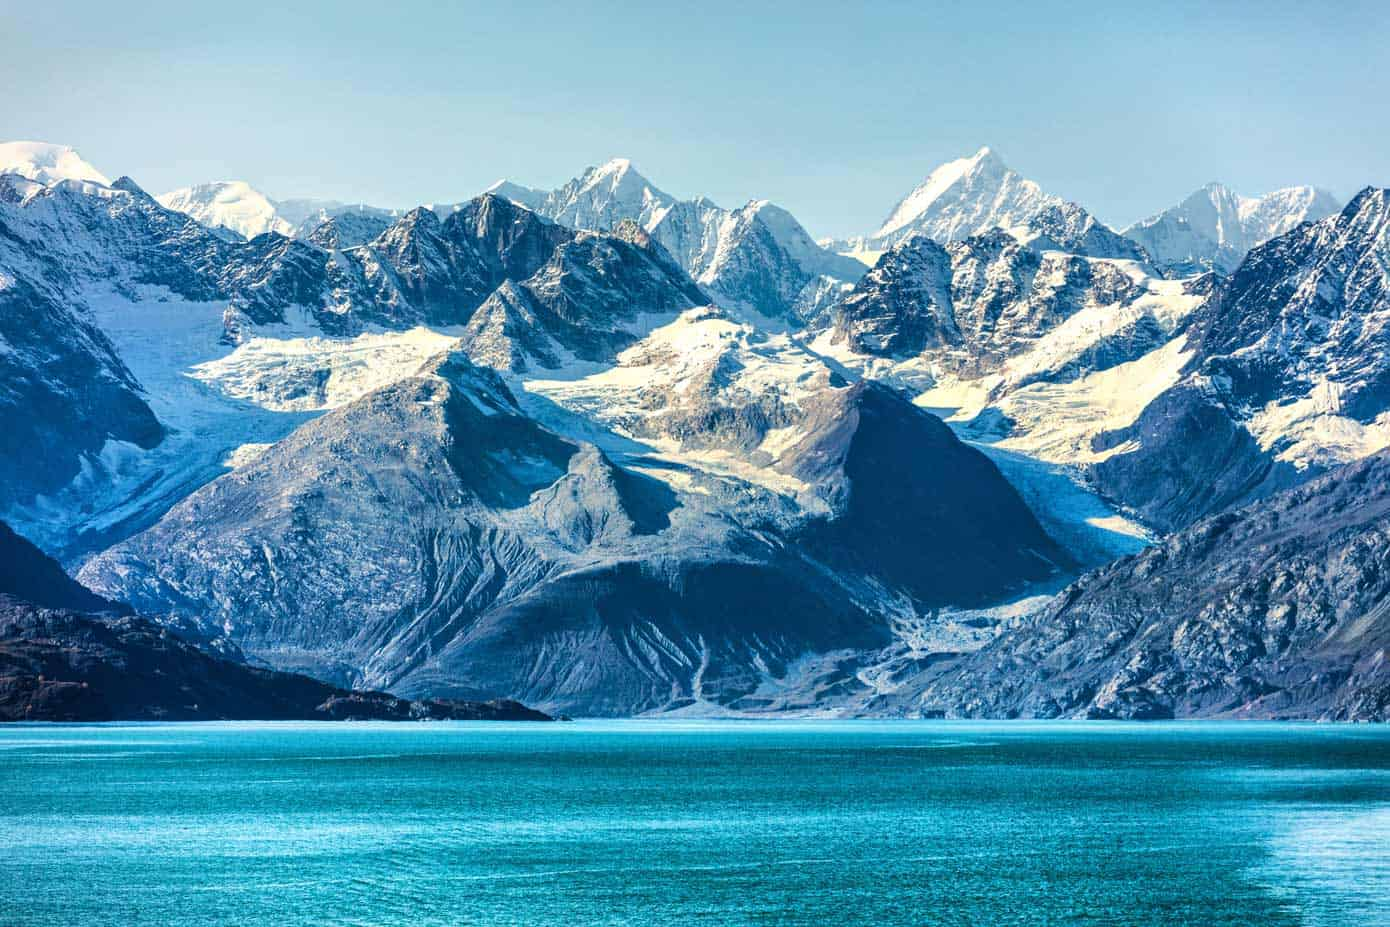 Mountains overlooking picturesque Glacier Bay National Park on an Alaska cruise.